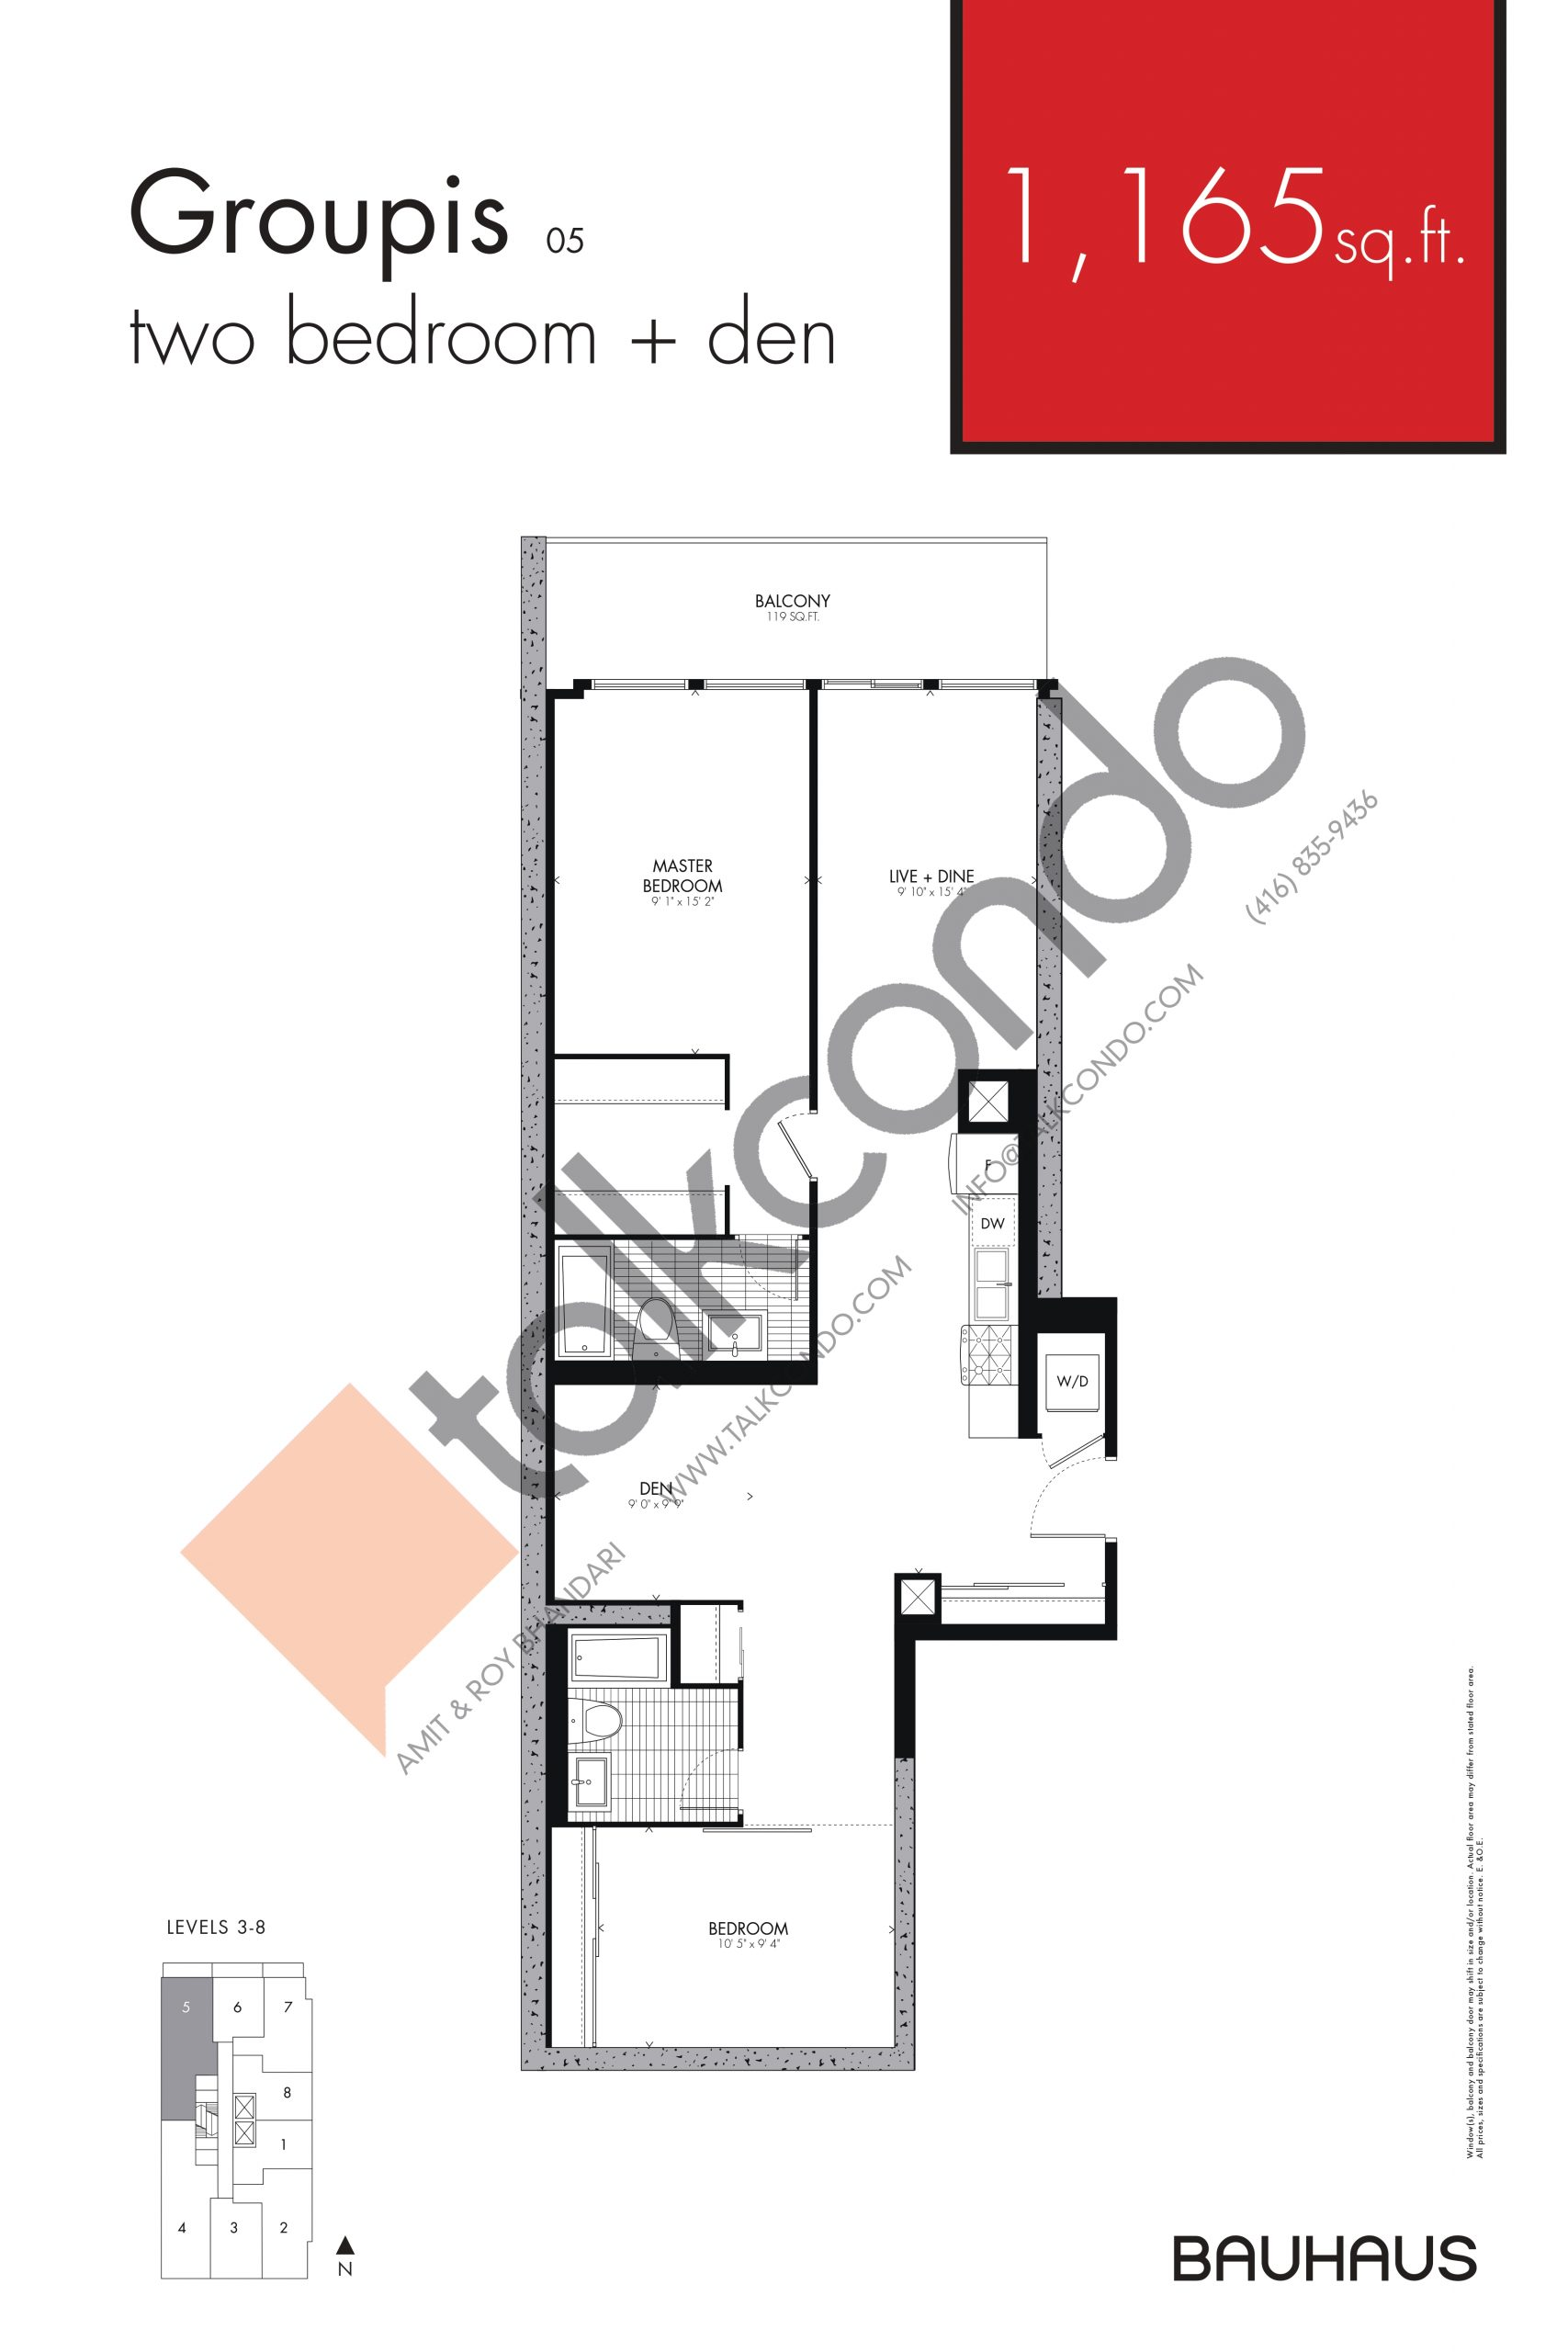 Groupis Floor Plan at Bauhaus Condos - 1165 sq.ft